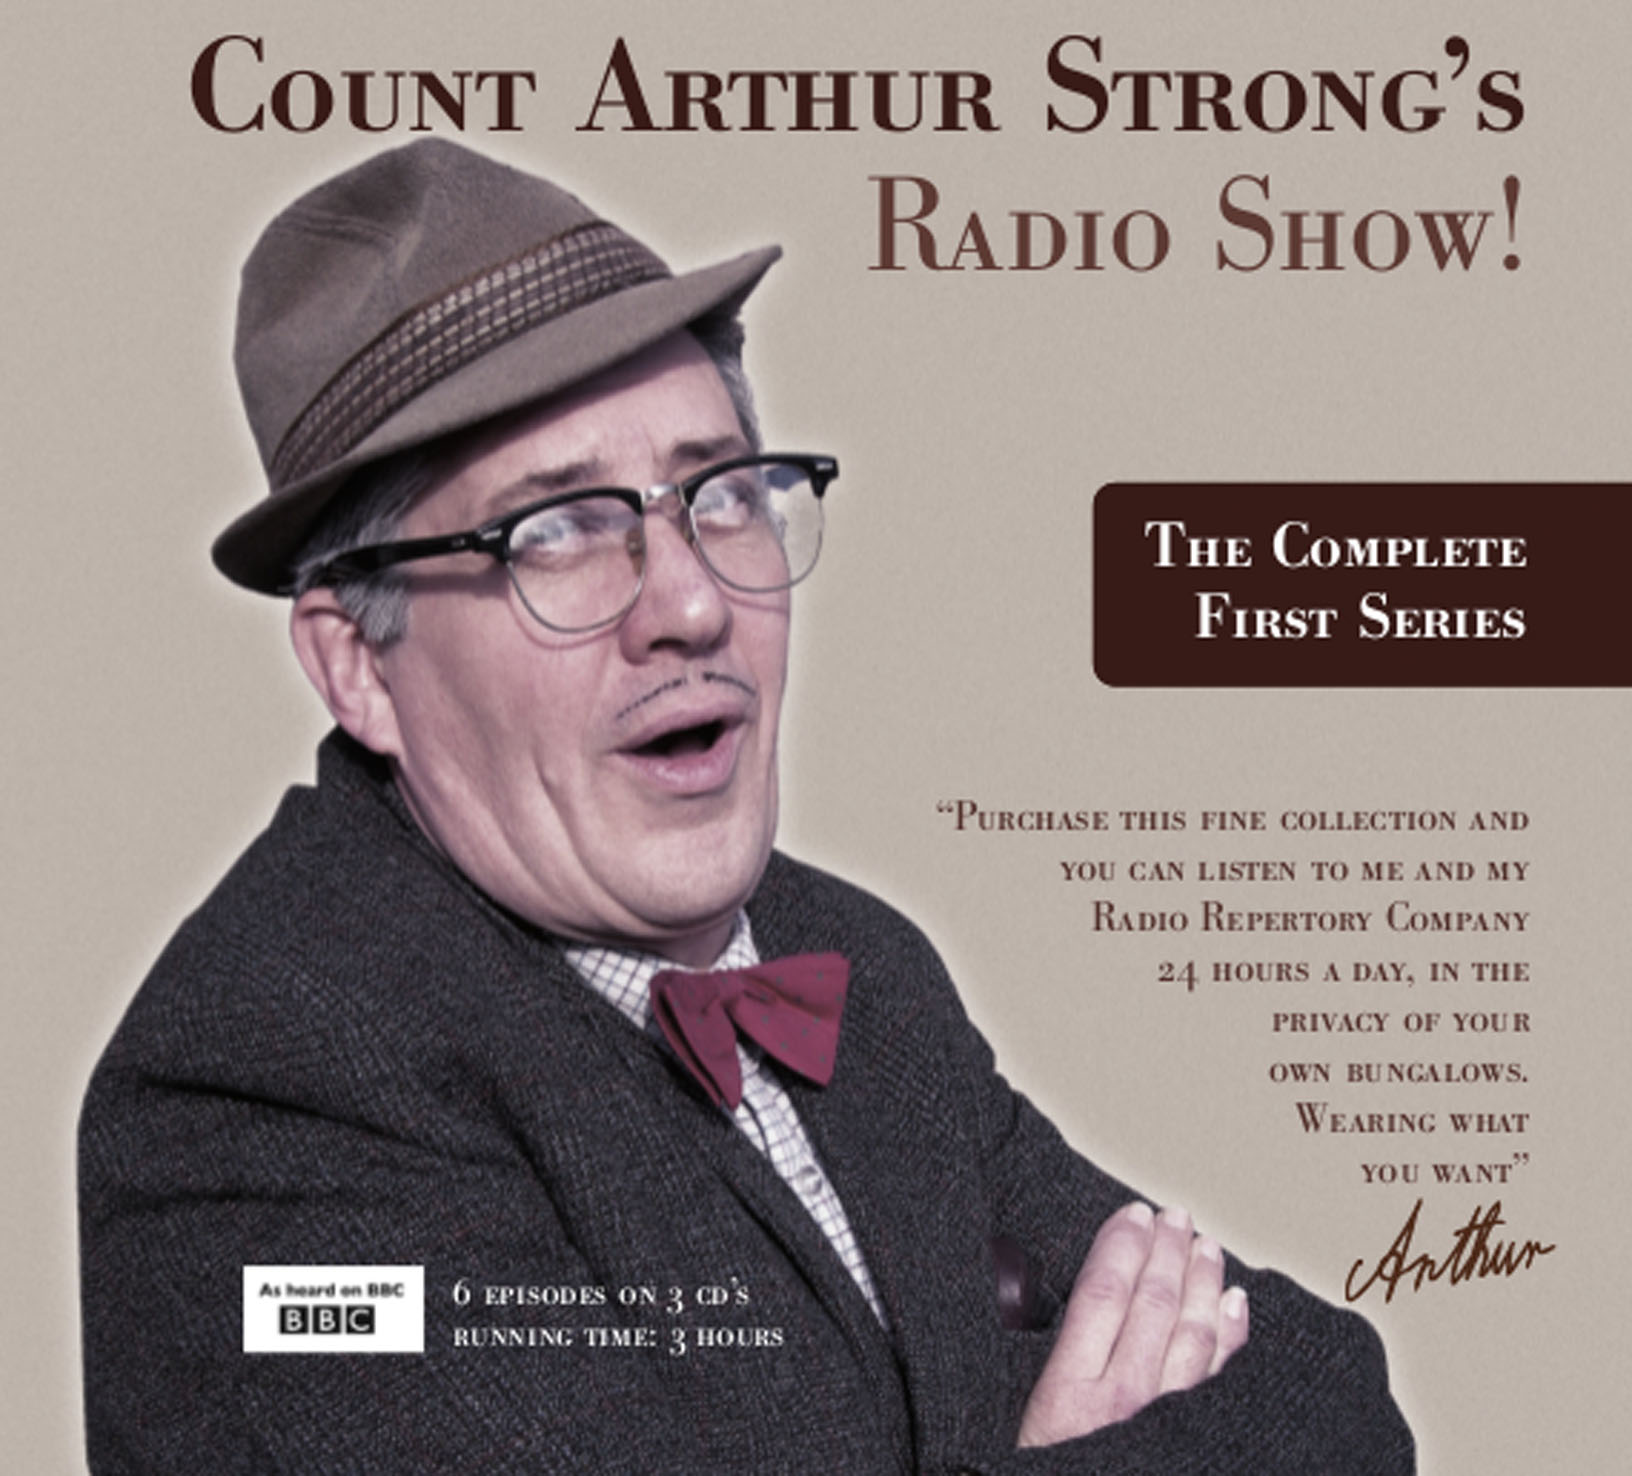 Count Arthur Strong's Radio Show! - Series 1 (complete) (3CD)